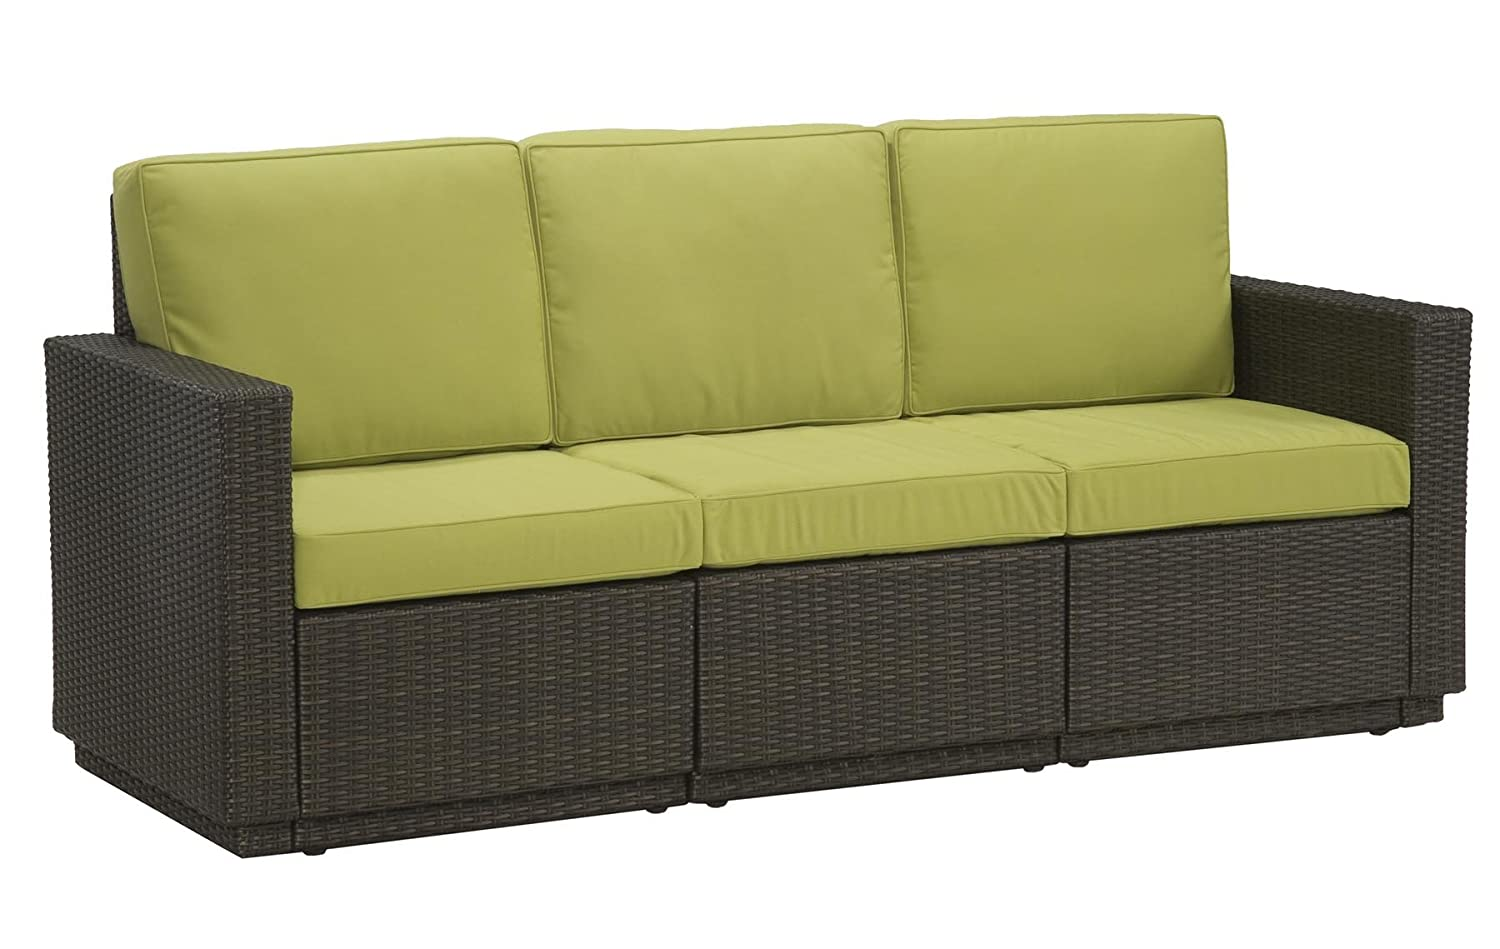 Riviera Three Seat Sofa